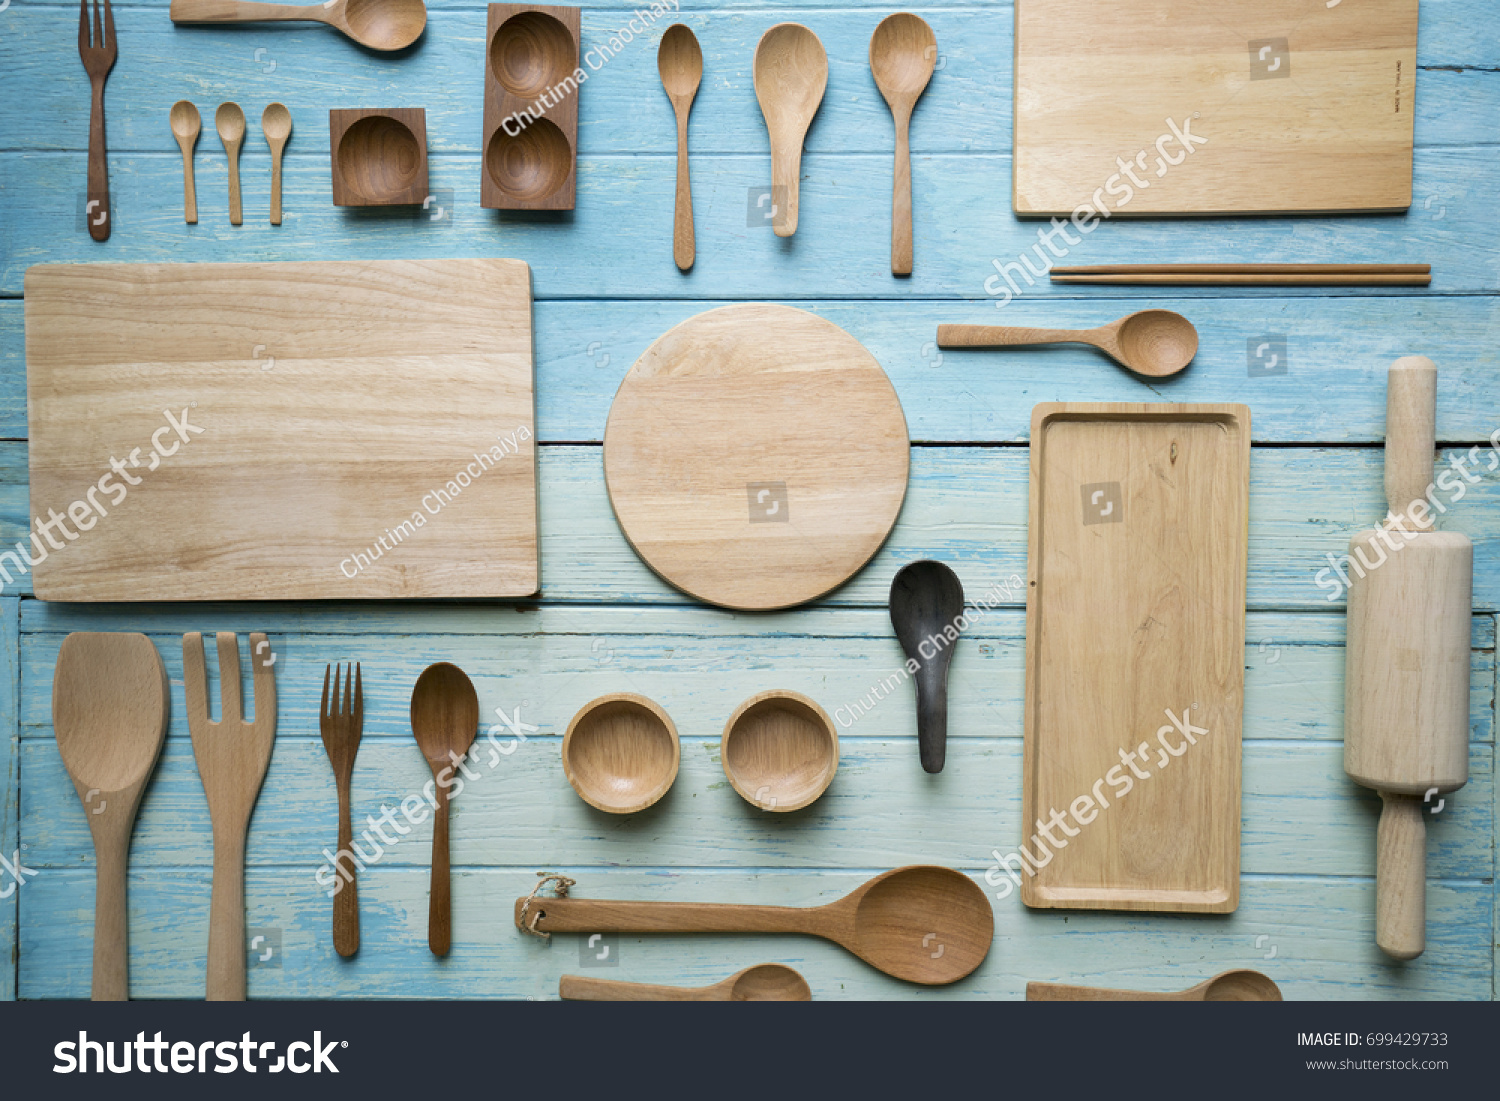 Kitchen Utensils Cooking On Wooden Table Stock Photo (Royalty Free ...